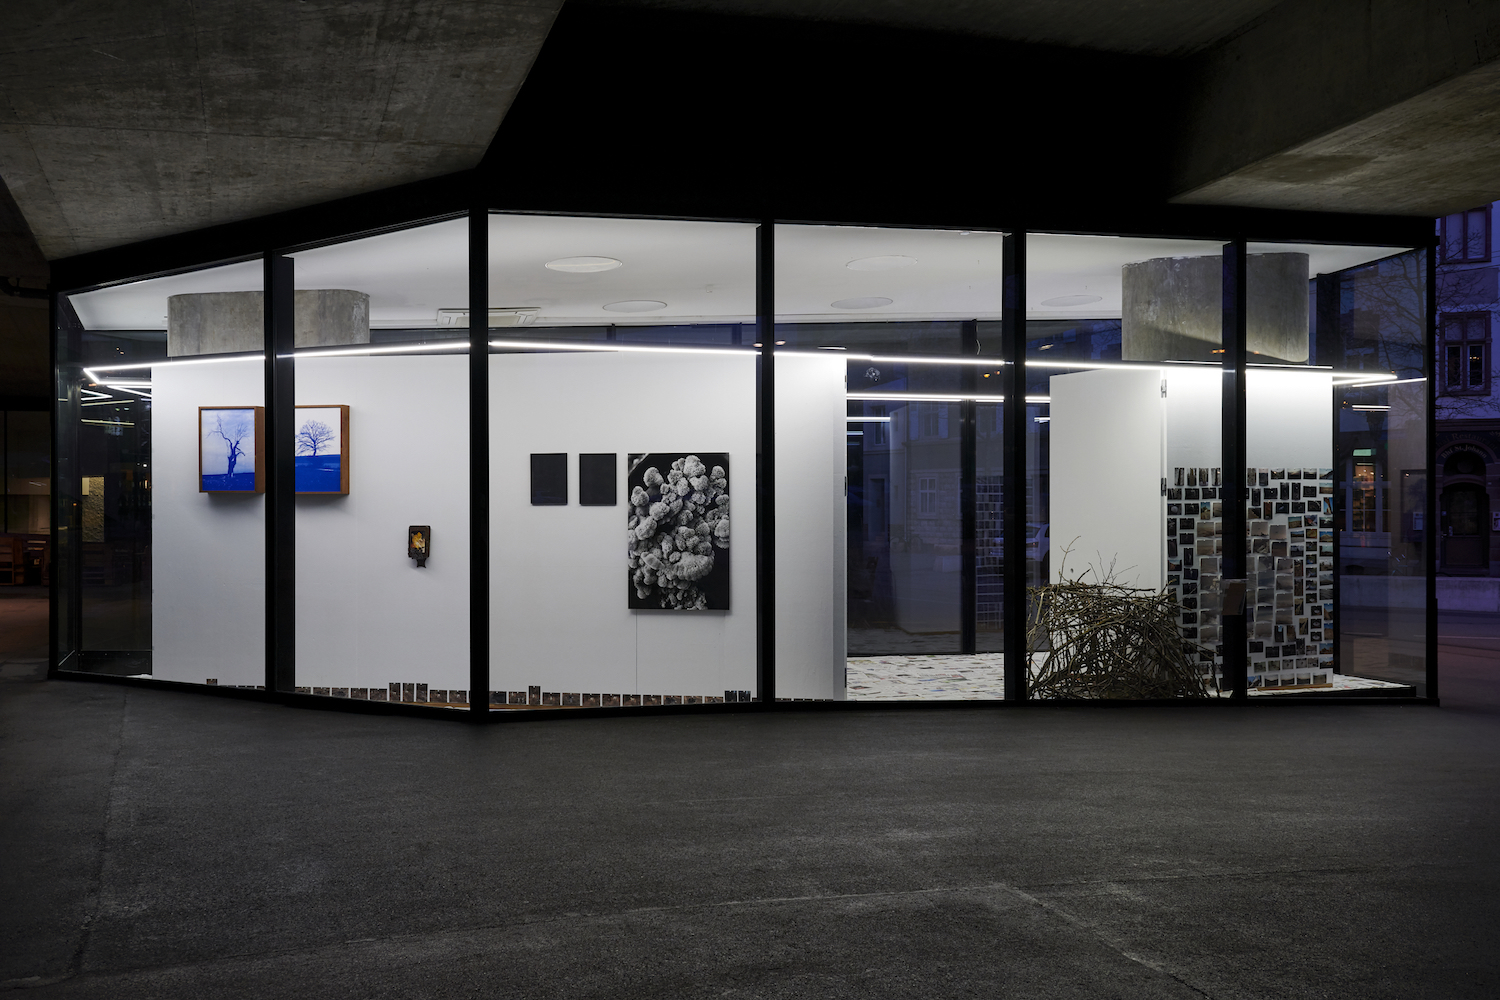 Our companion, our other, Installation view, 2020. VITRINE, Basel. Photographer: Nici Jost.